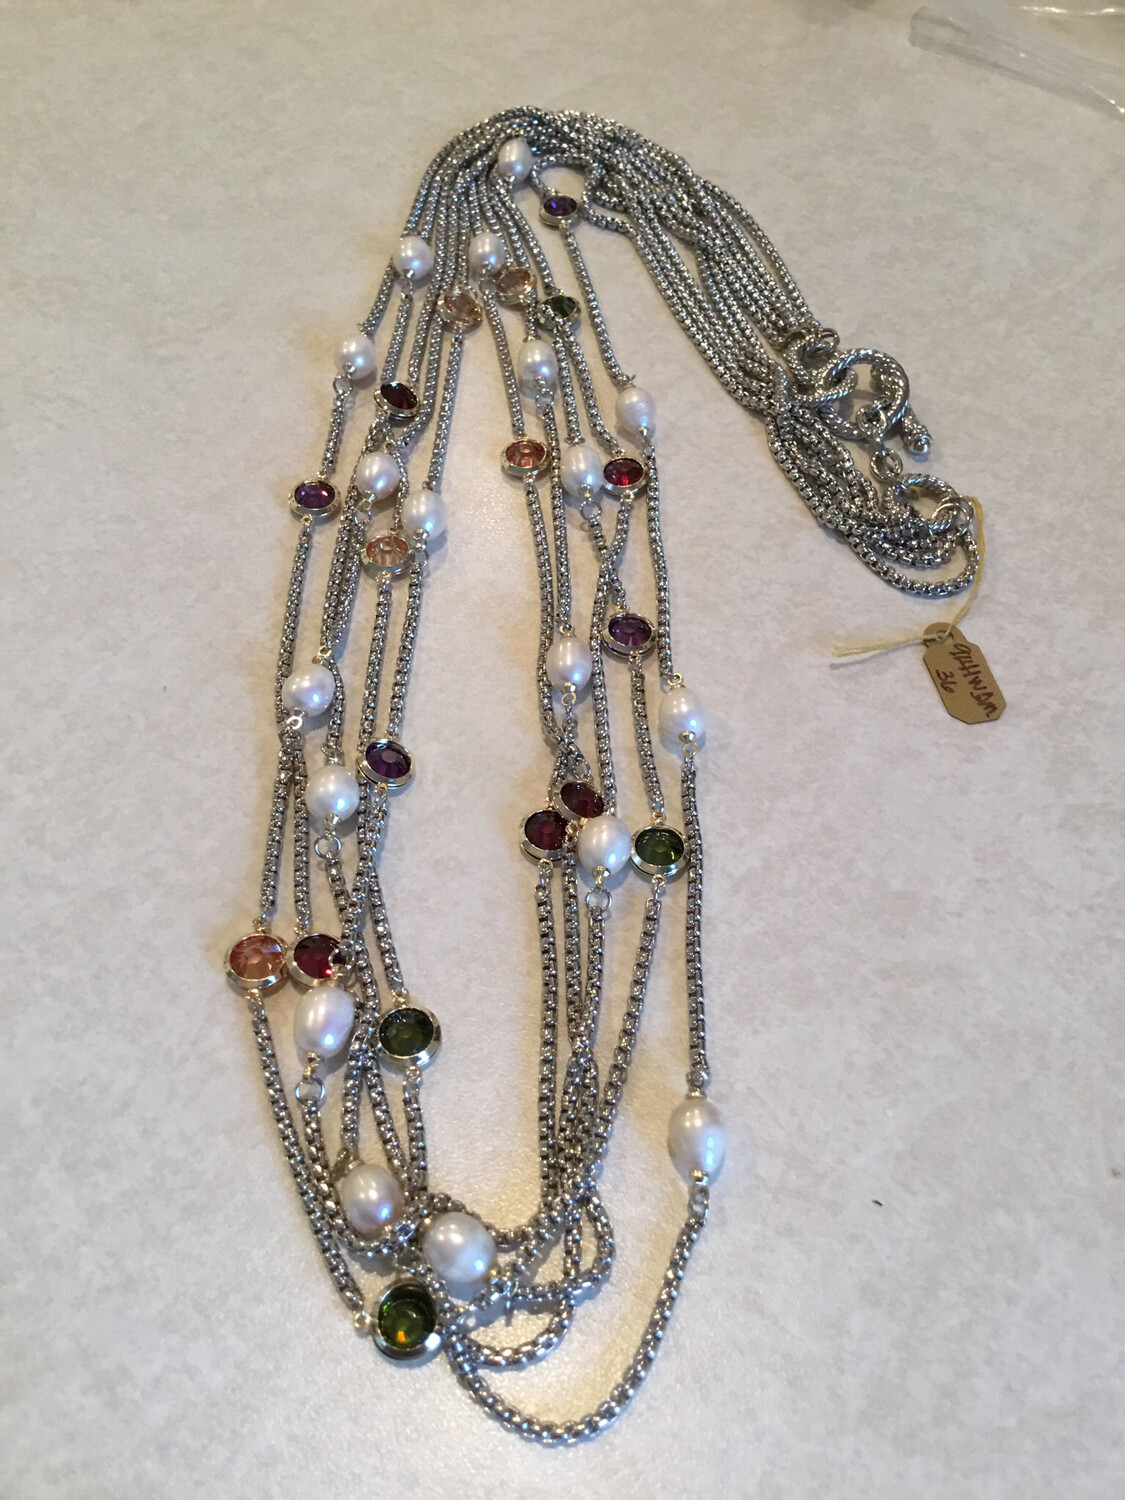 Five Layer Silver Necklace With Multi Color Gemstones And Pearls